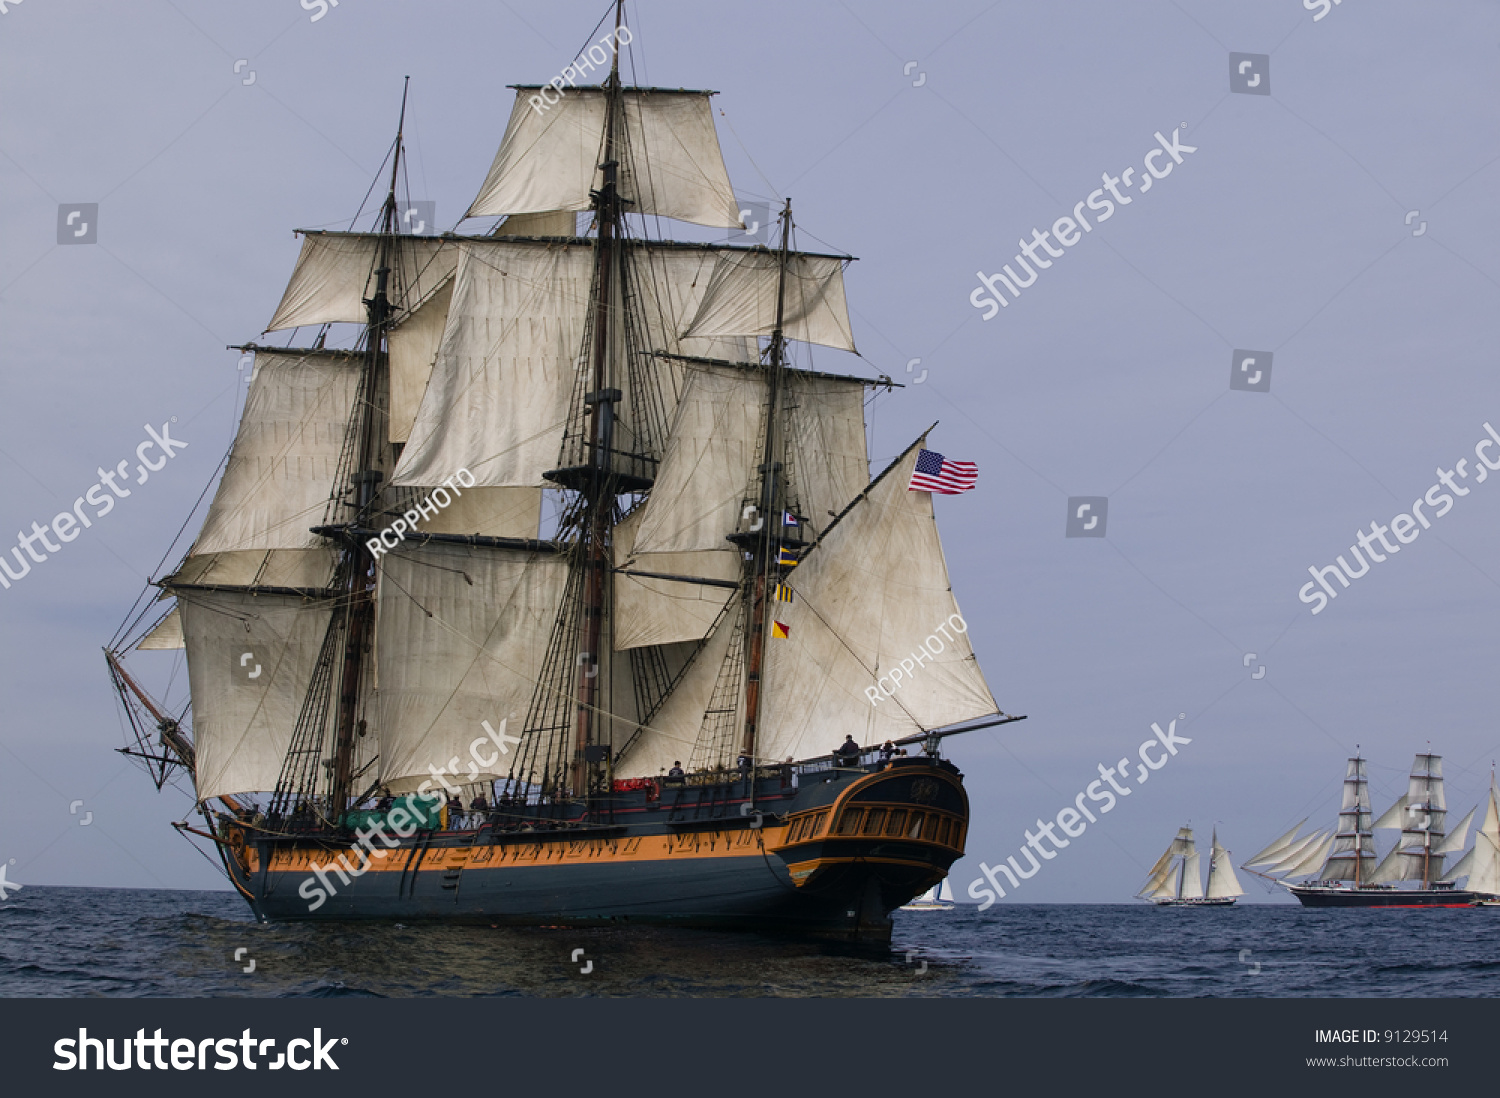 Vintage Frigate Sailing Ship At Sea Under Full Sail With ...